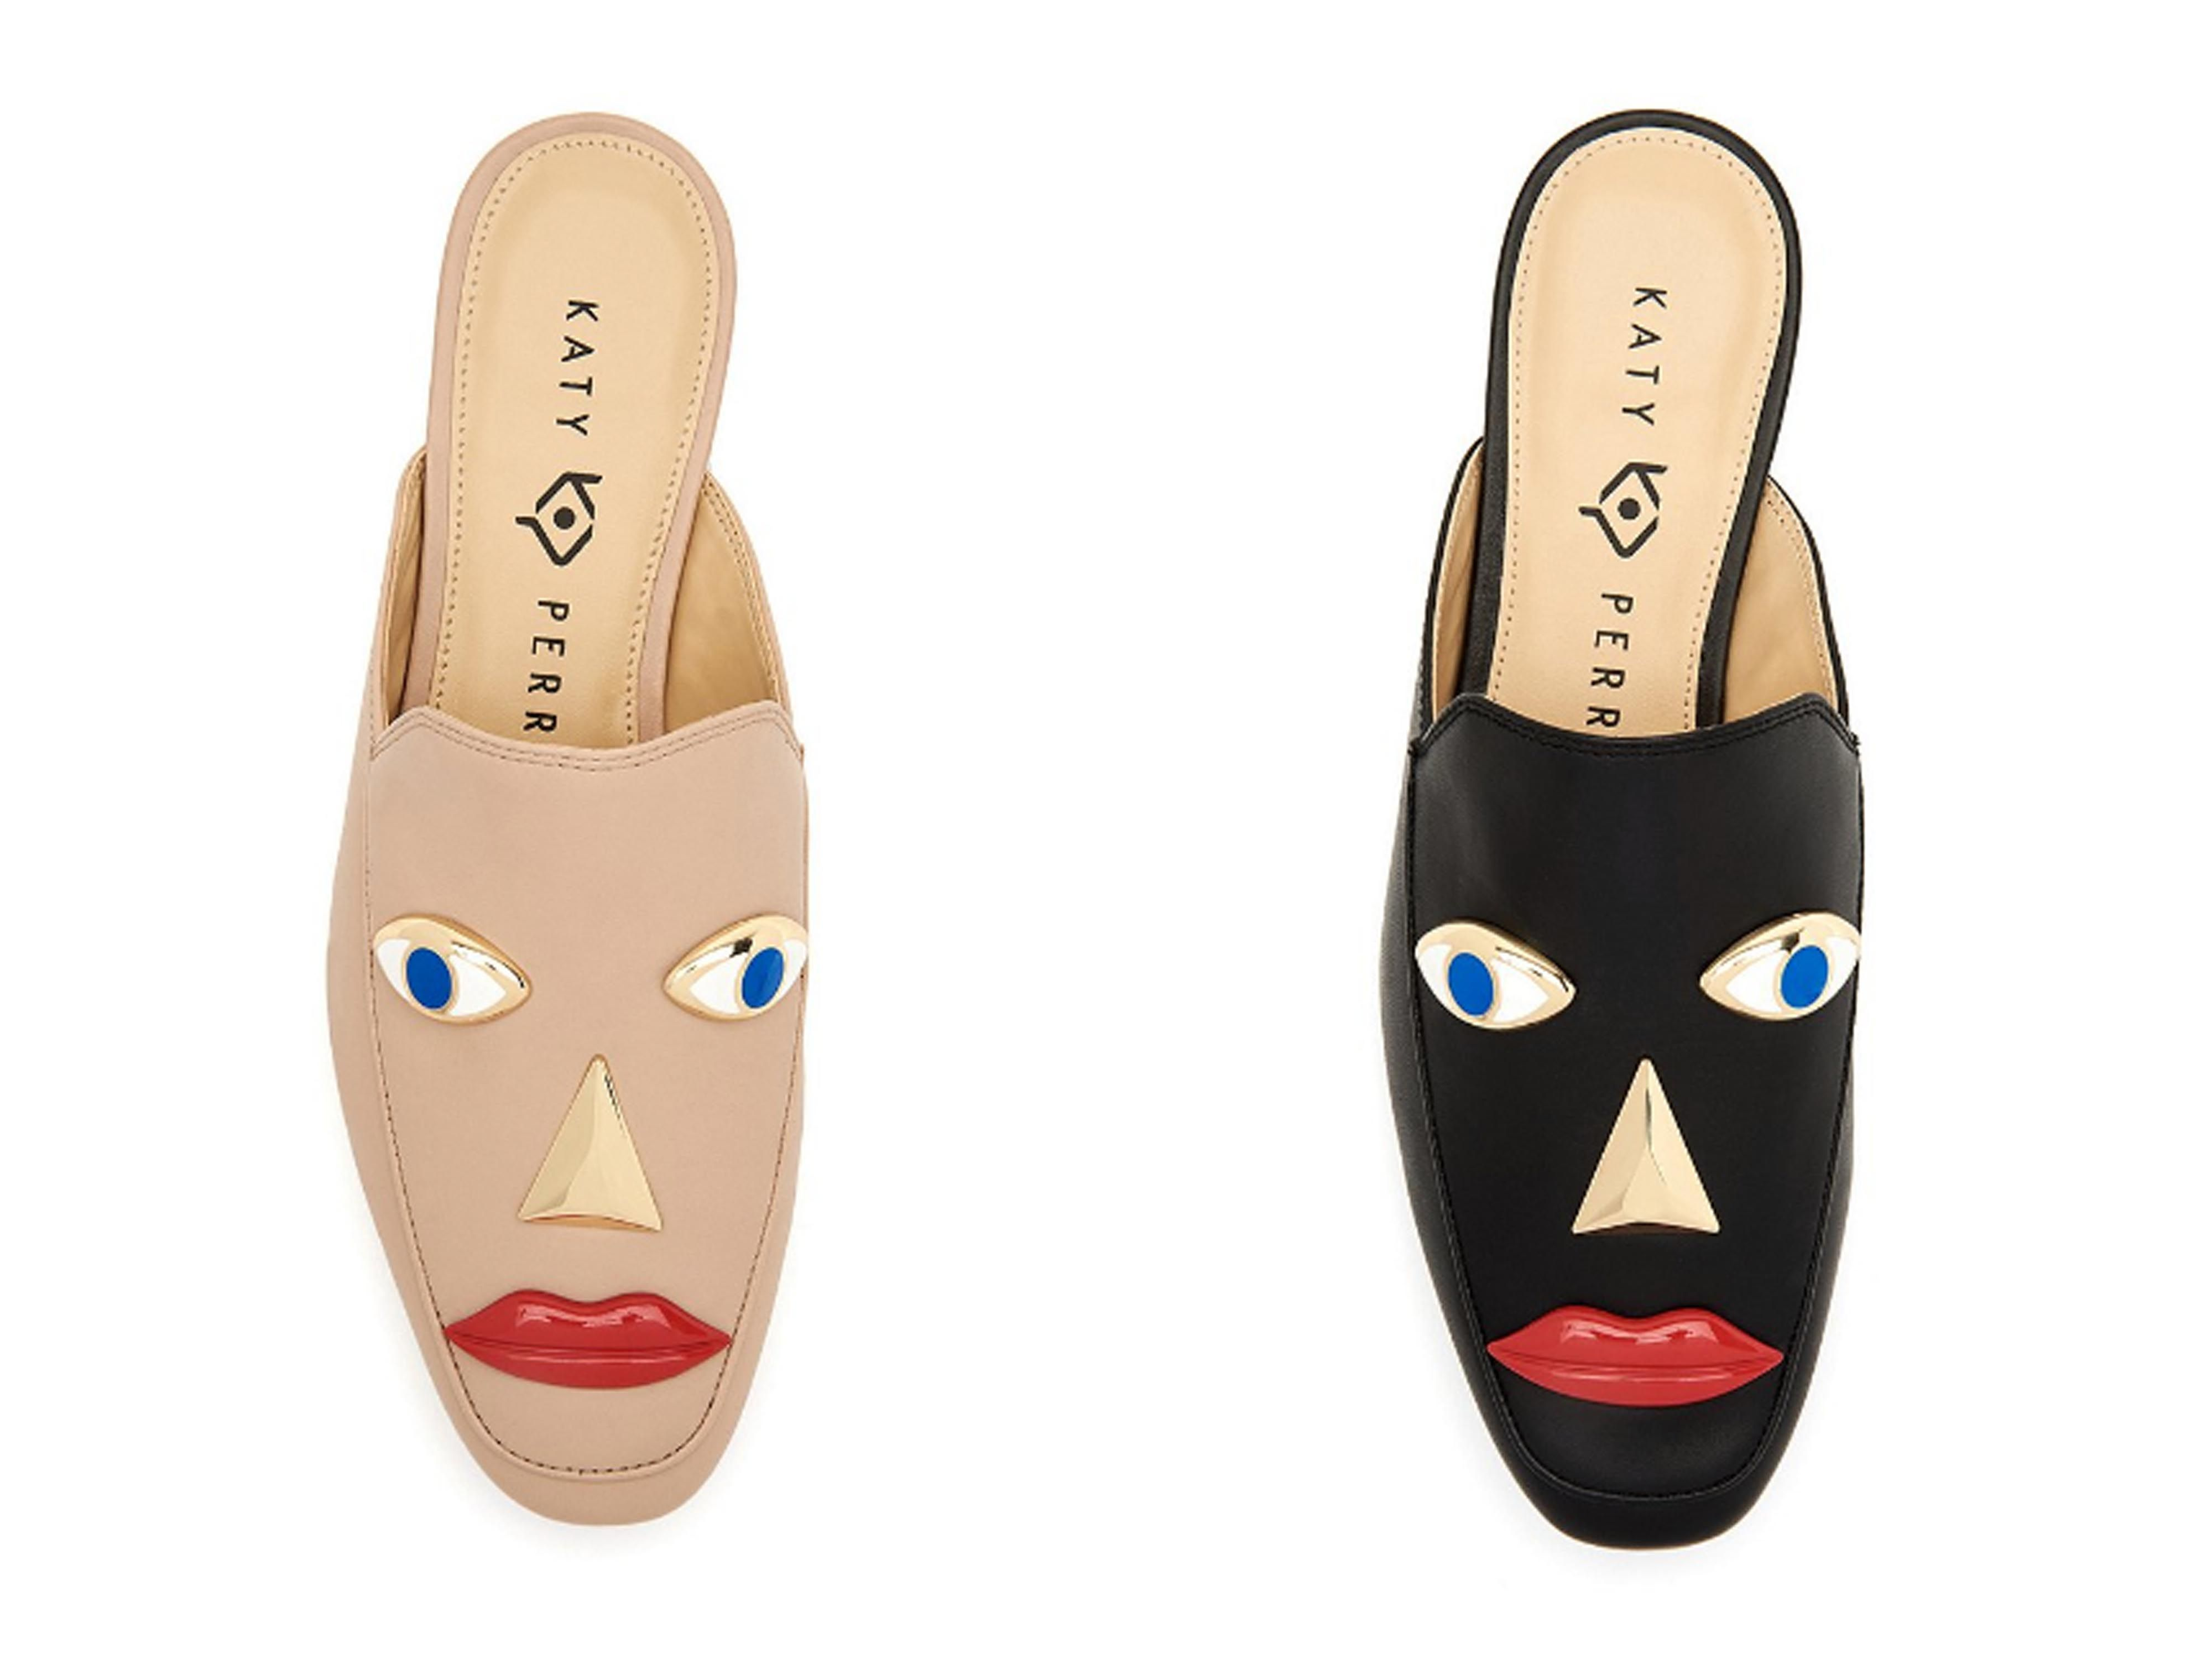 Katy Perry pulls shoes from sale after backlash to designs resembling blackface